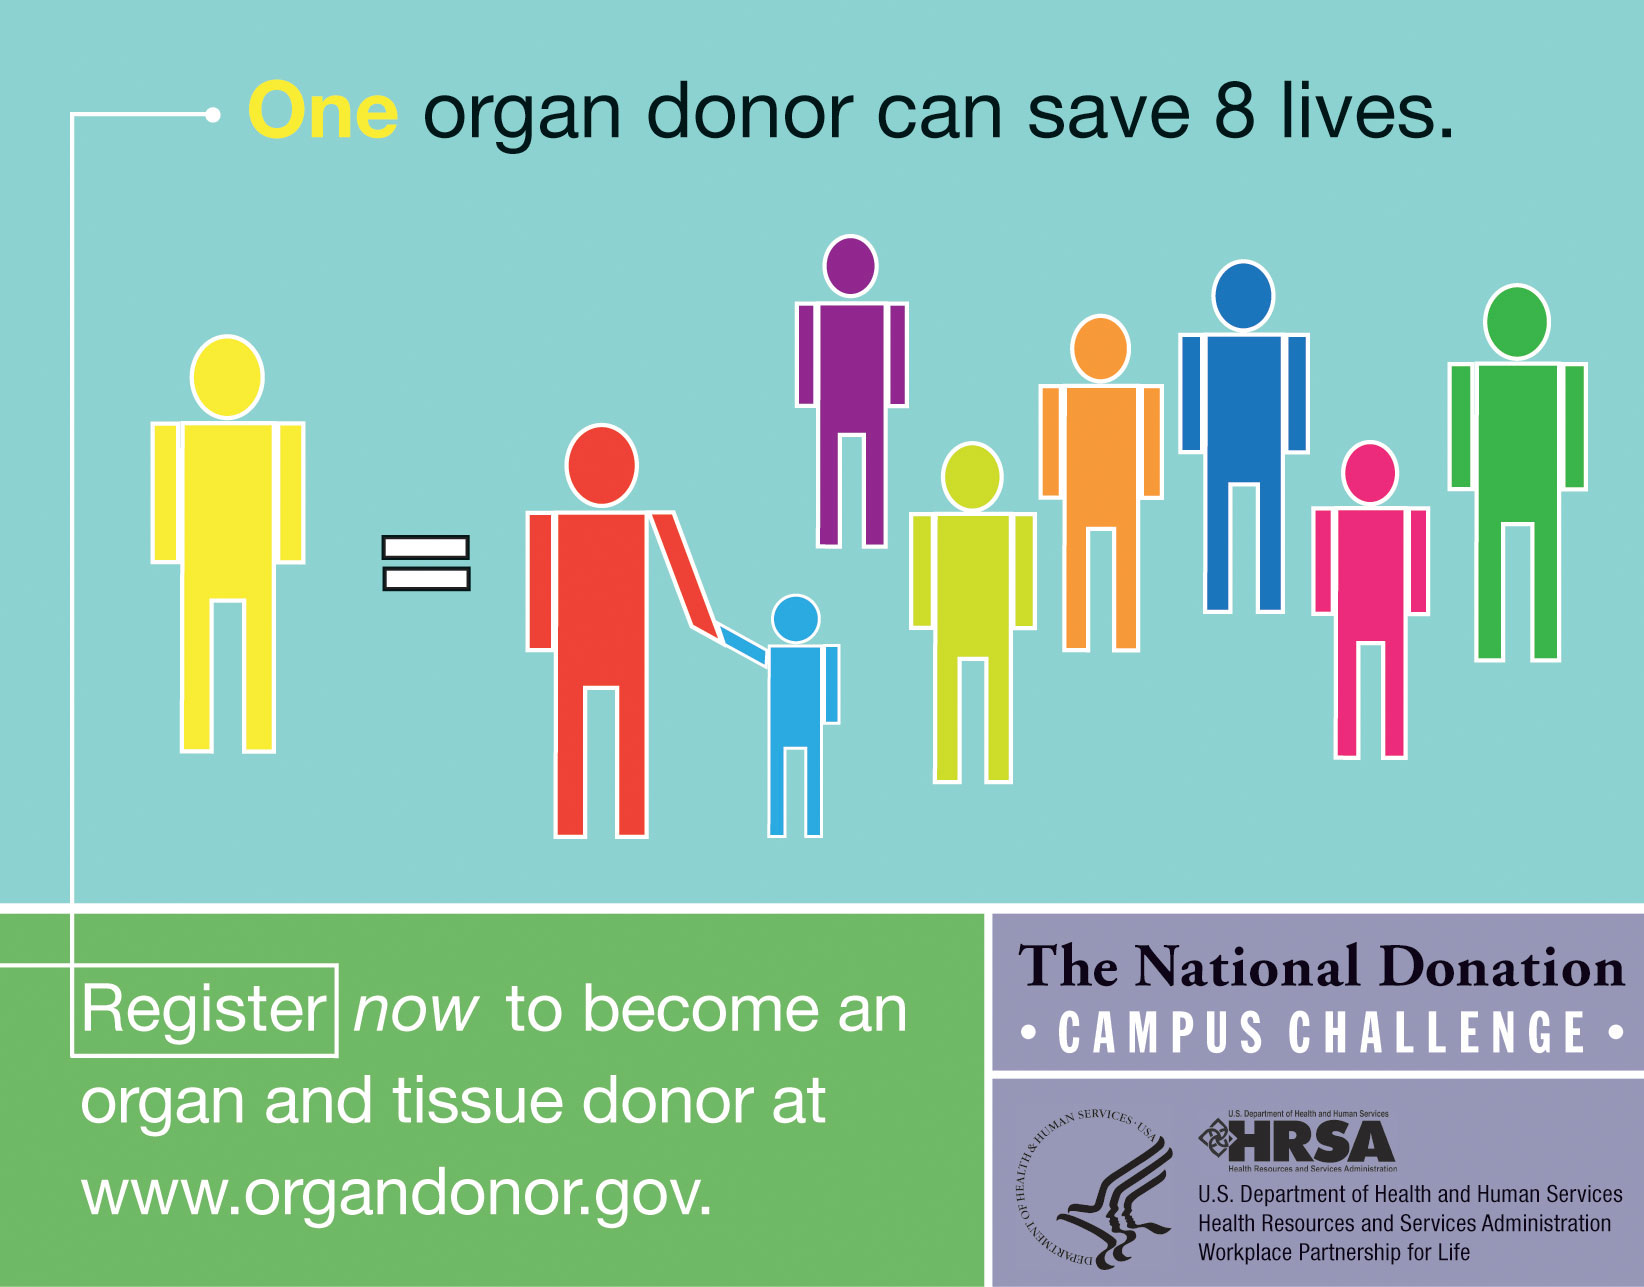 an introduction to the reasons for organ donation Home pros and cons 10 most notable pros and cons of organ donation 10 most notable pros and cons of organ donation pros and cons aug 7, 2015 it is kind of unnerving that the moment you get your driver's license, you will be asked whether or not you are willing to become an organ donor it would seem like they are expecting for a.